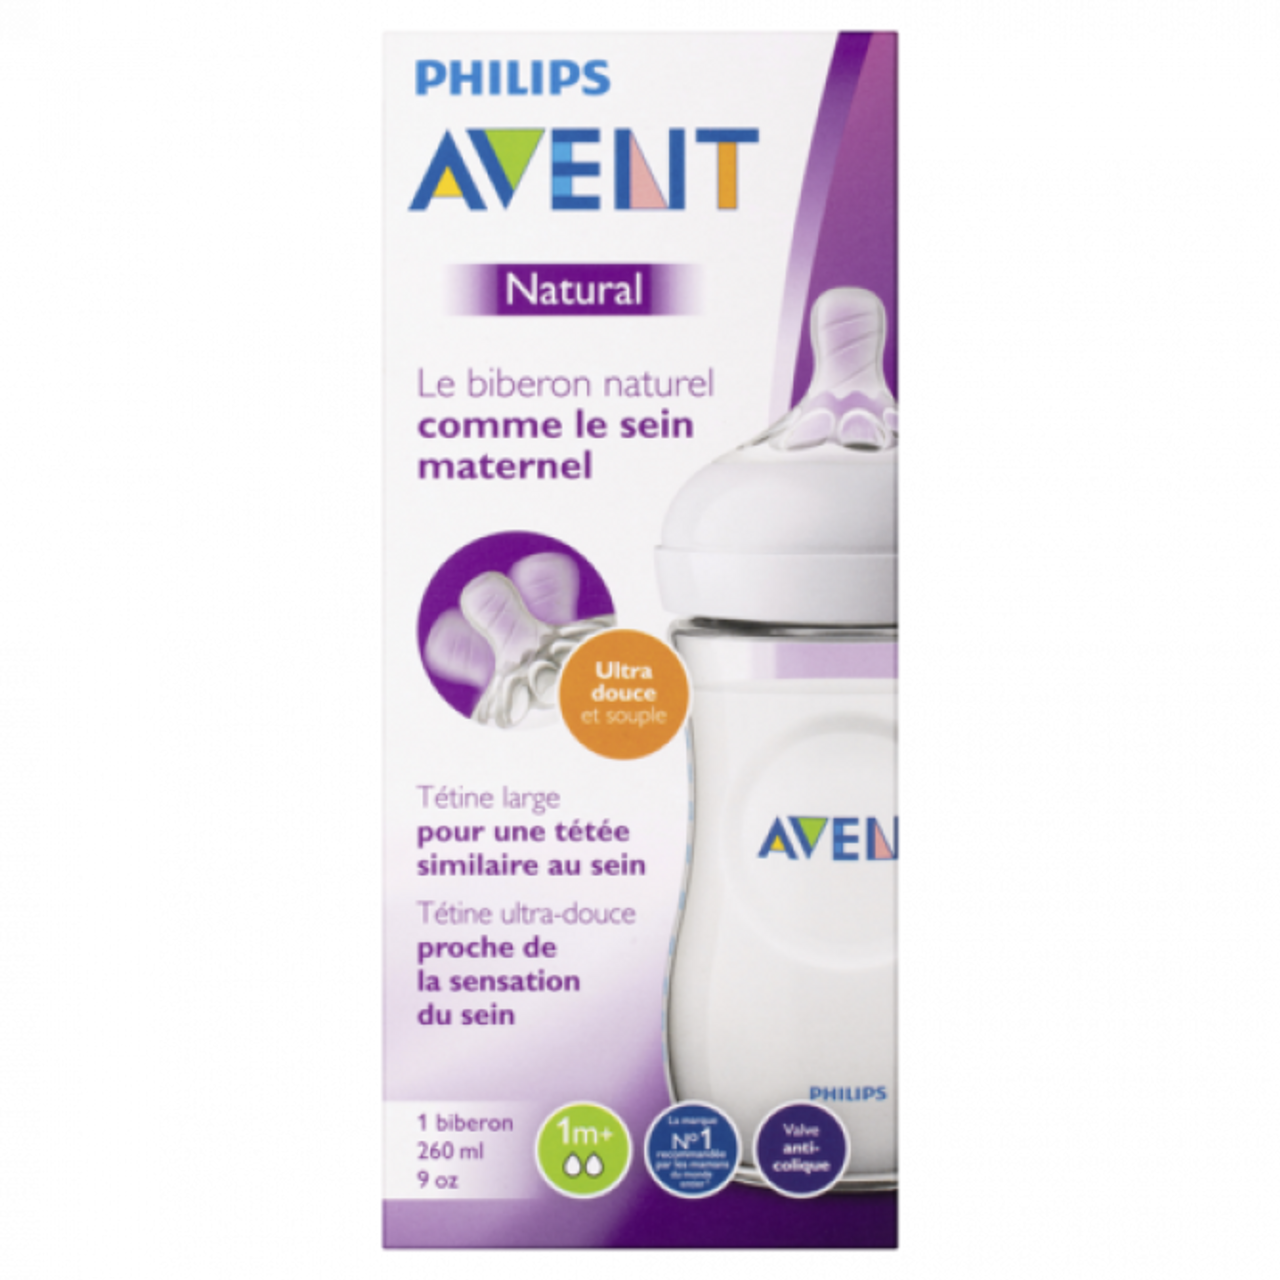 Avent Natural Bottle 1m+ 260ml at Baby Barn Discounts Avent natural feeding bottle has a wide breast-shaped teat for natural latch on.